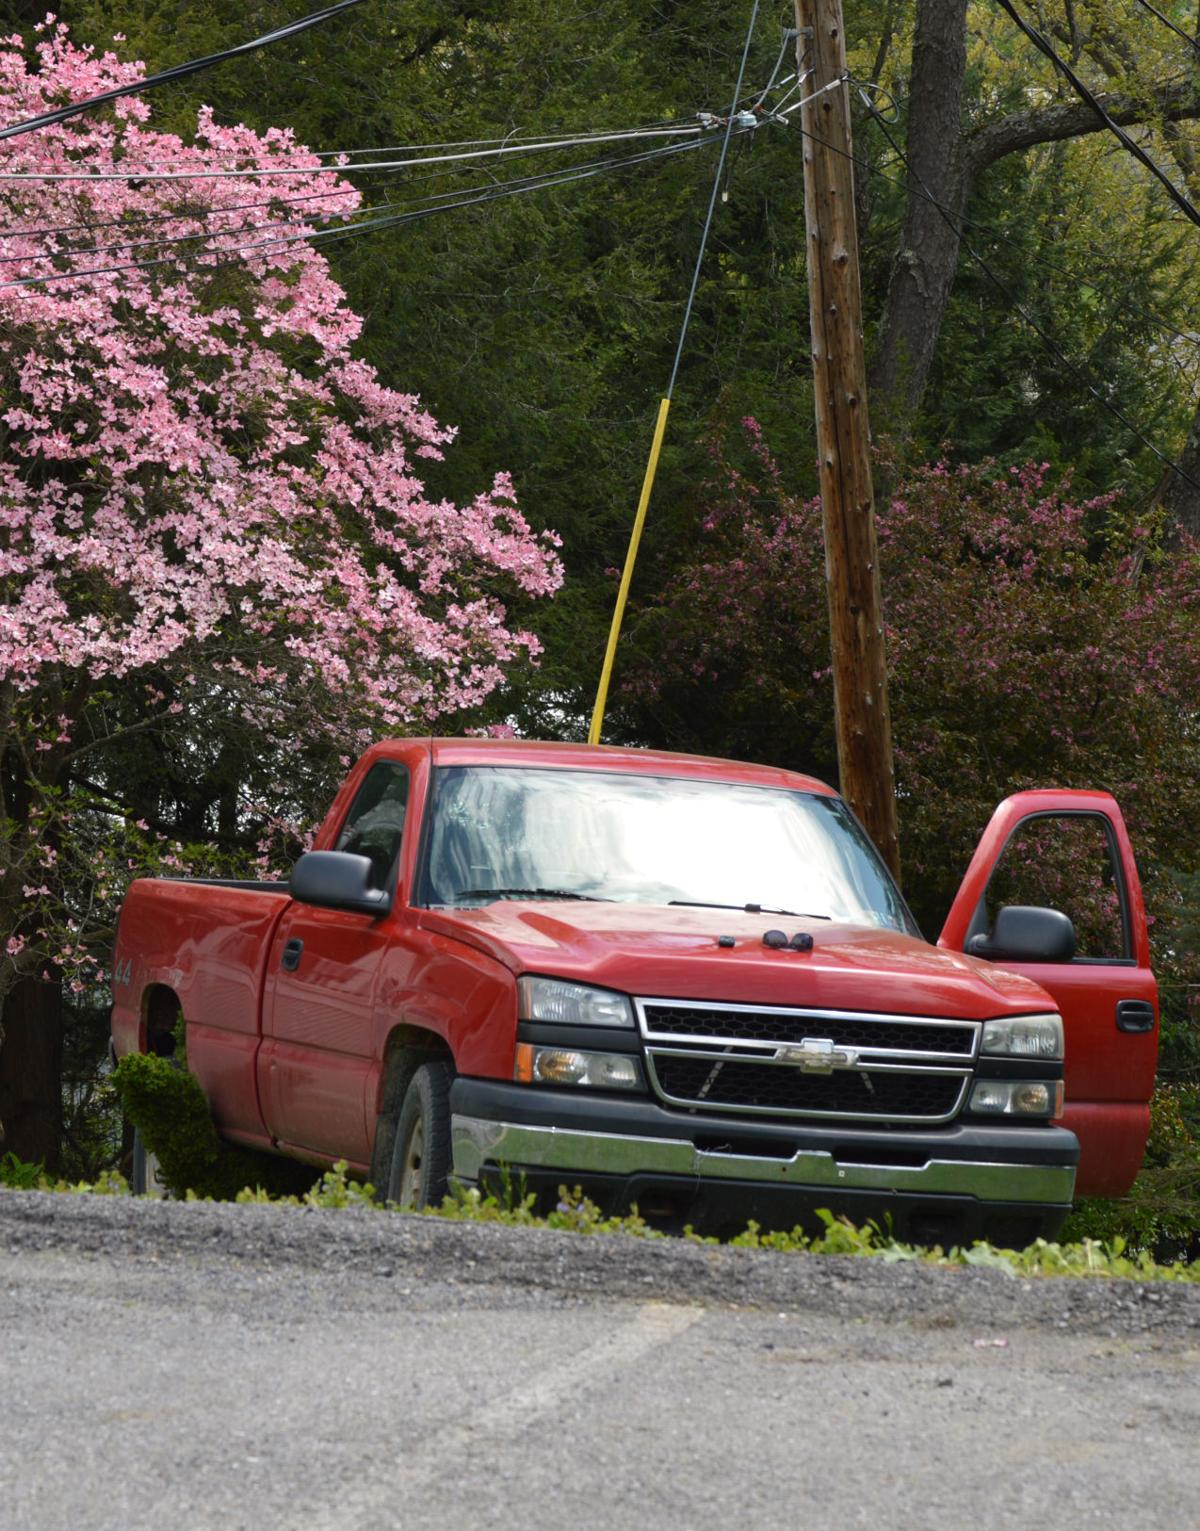 Truck goes down embankment near parking lot